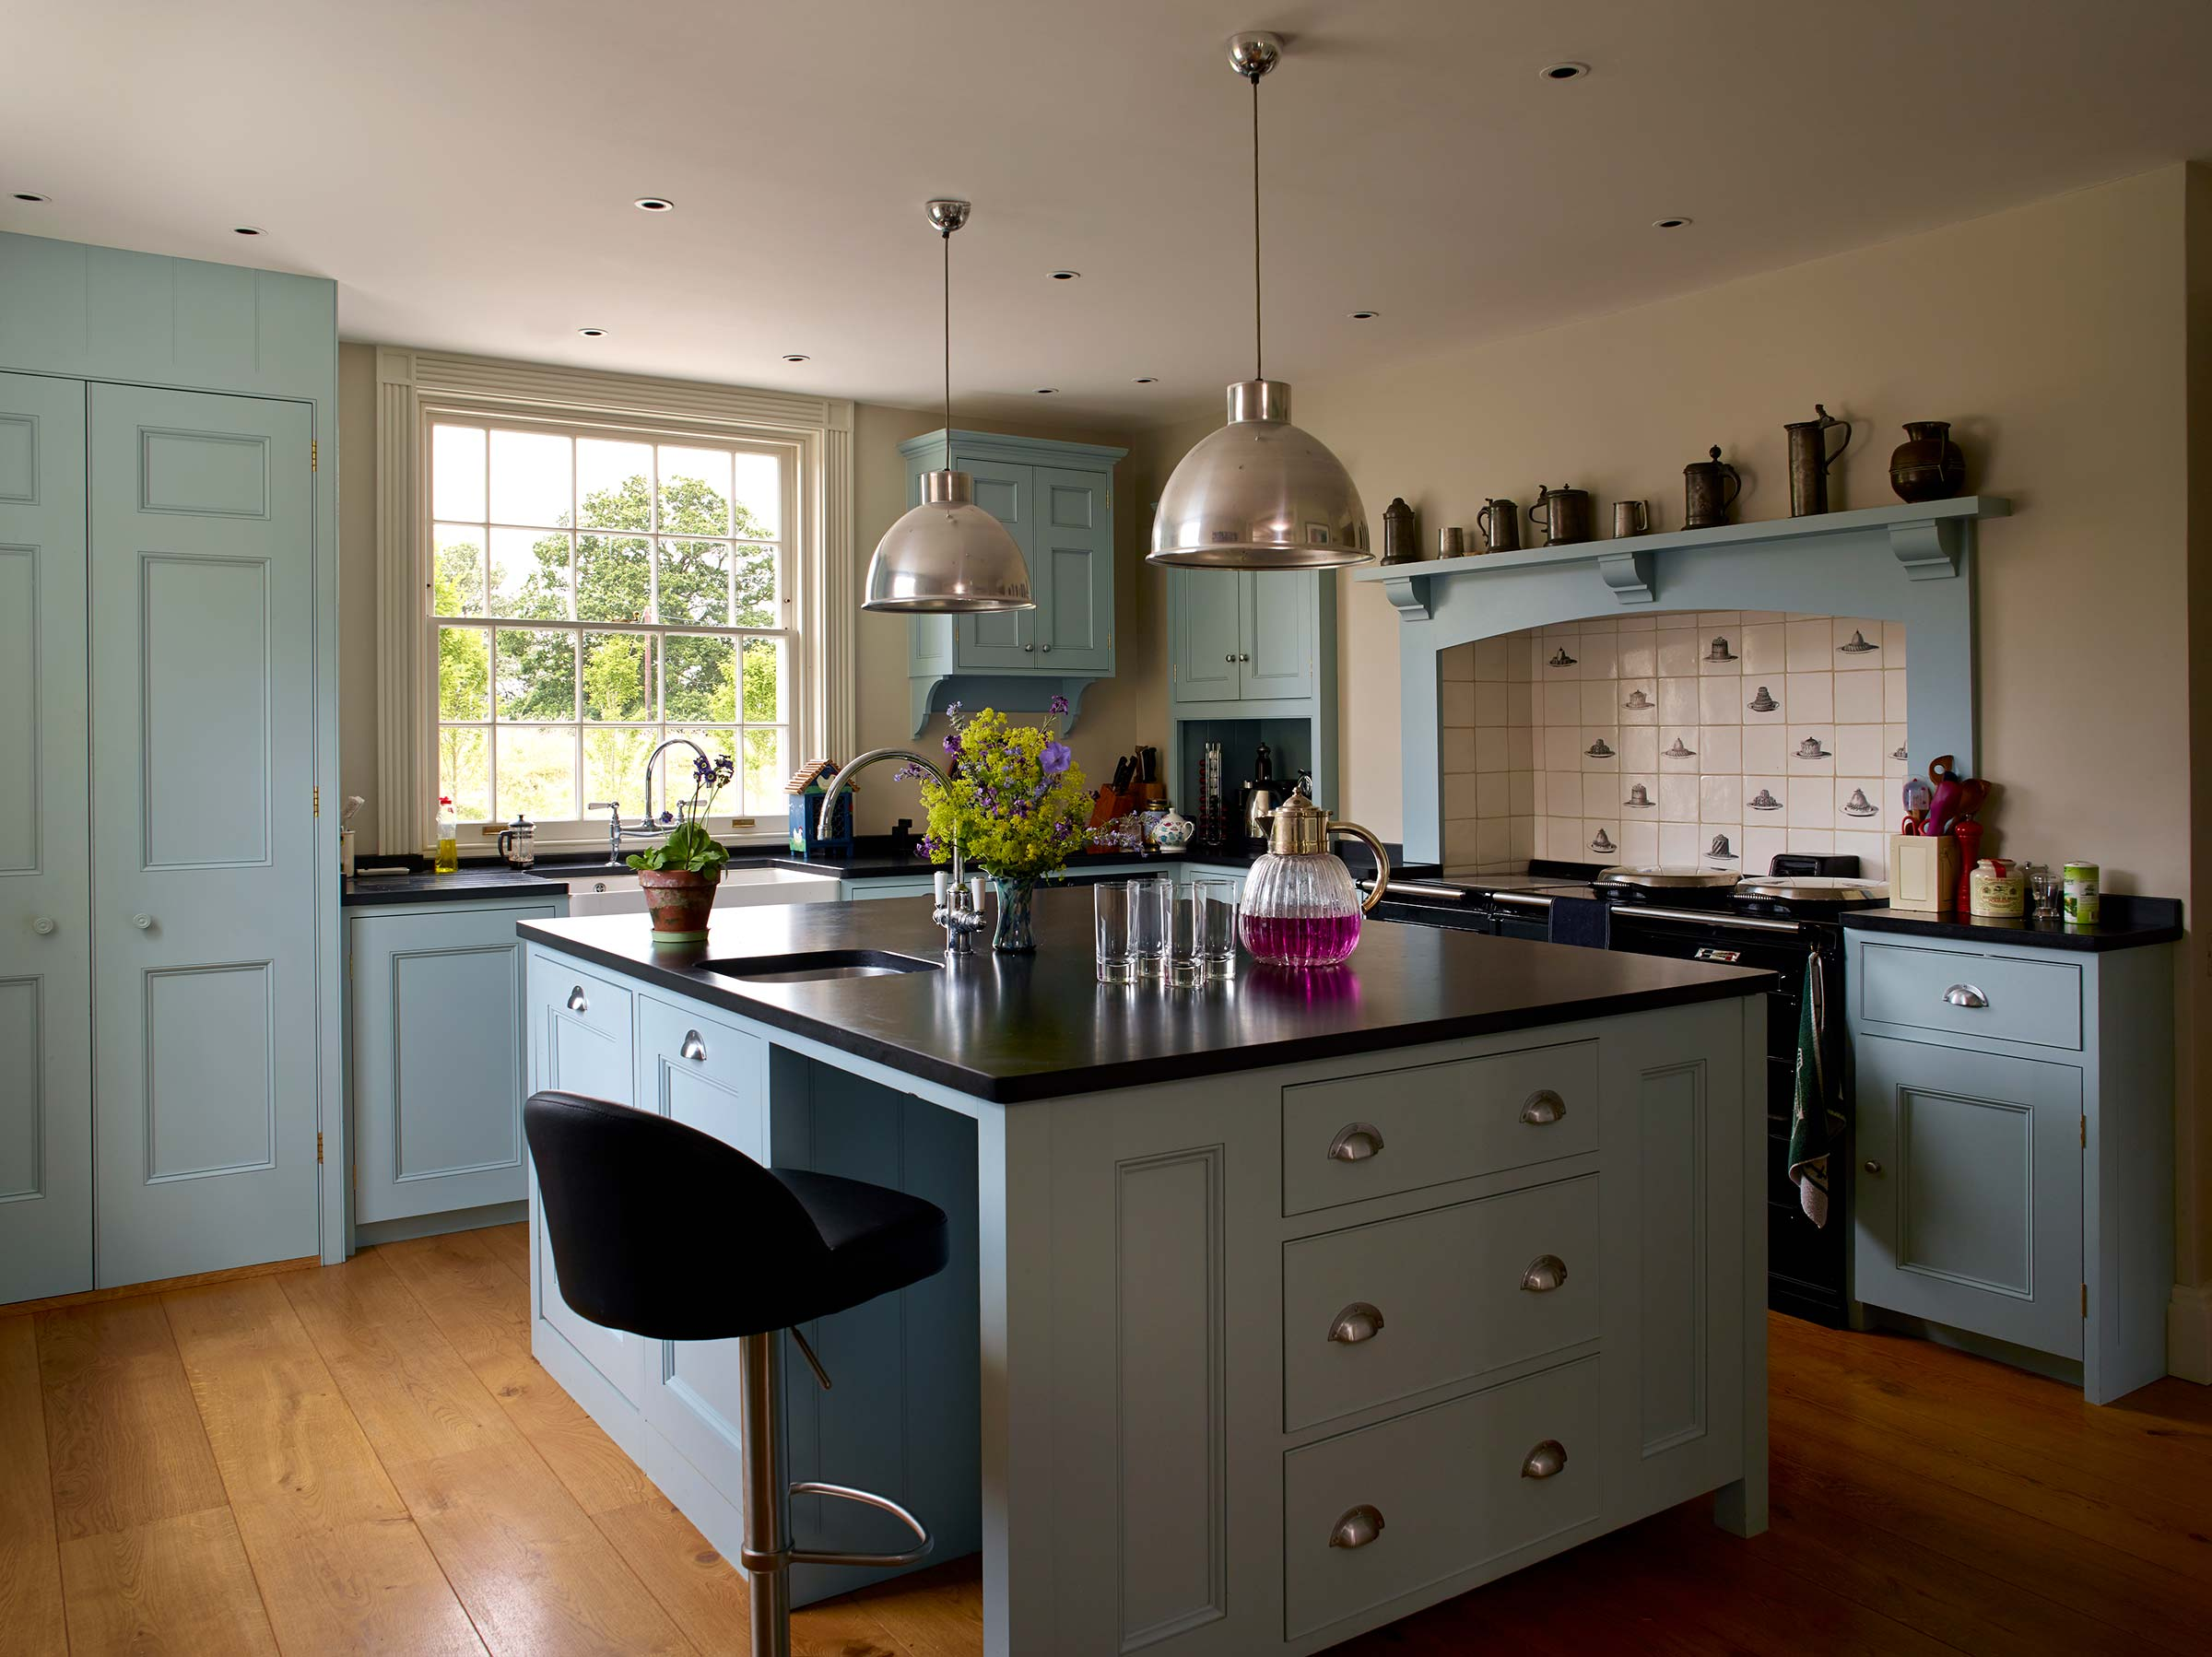 Alterations & restoration to Grade II Listed house in Hampshire